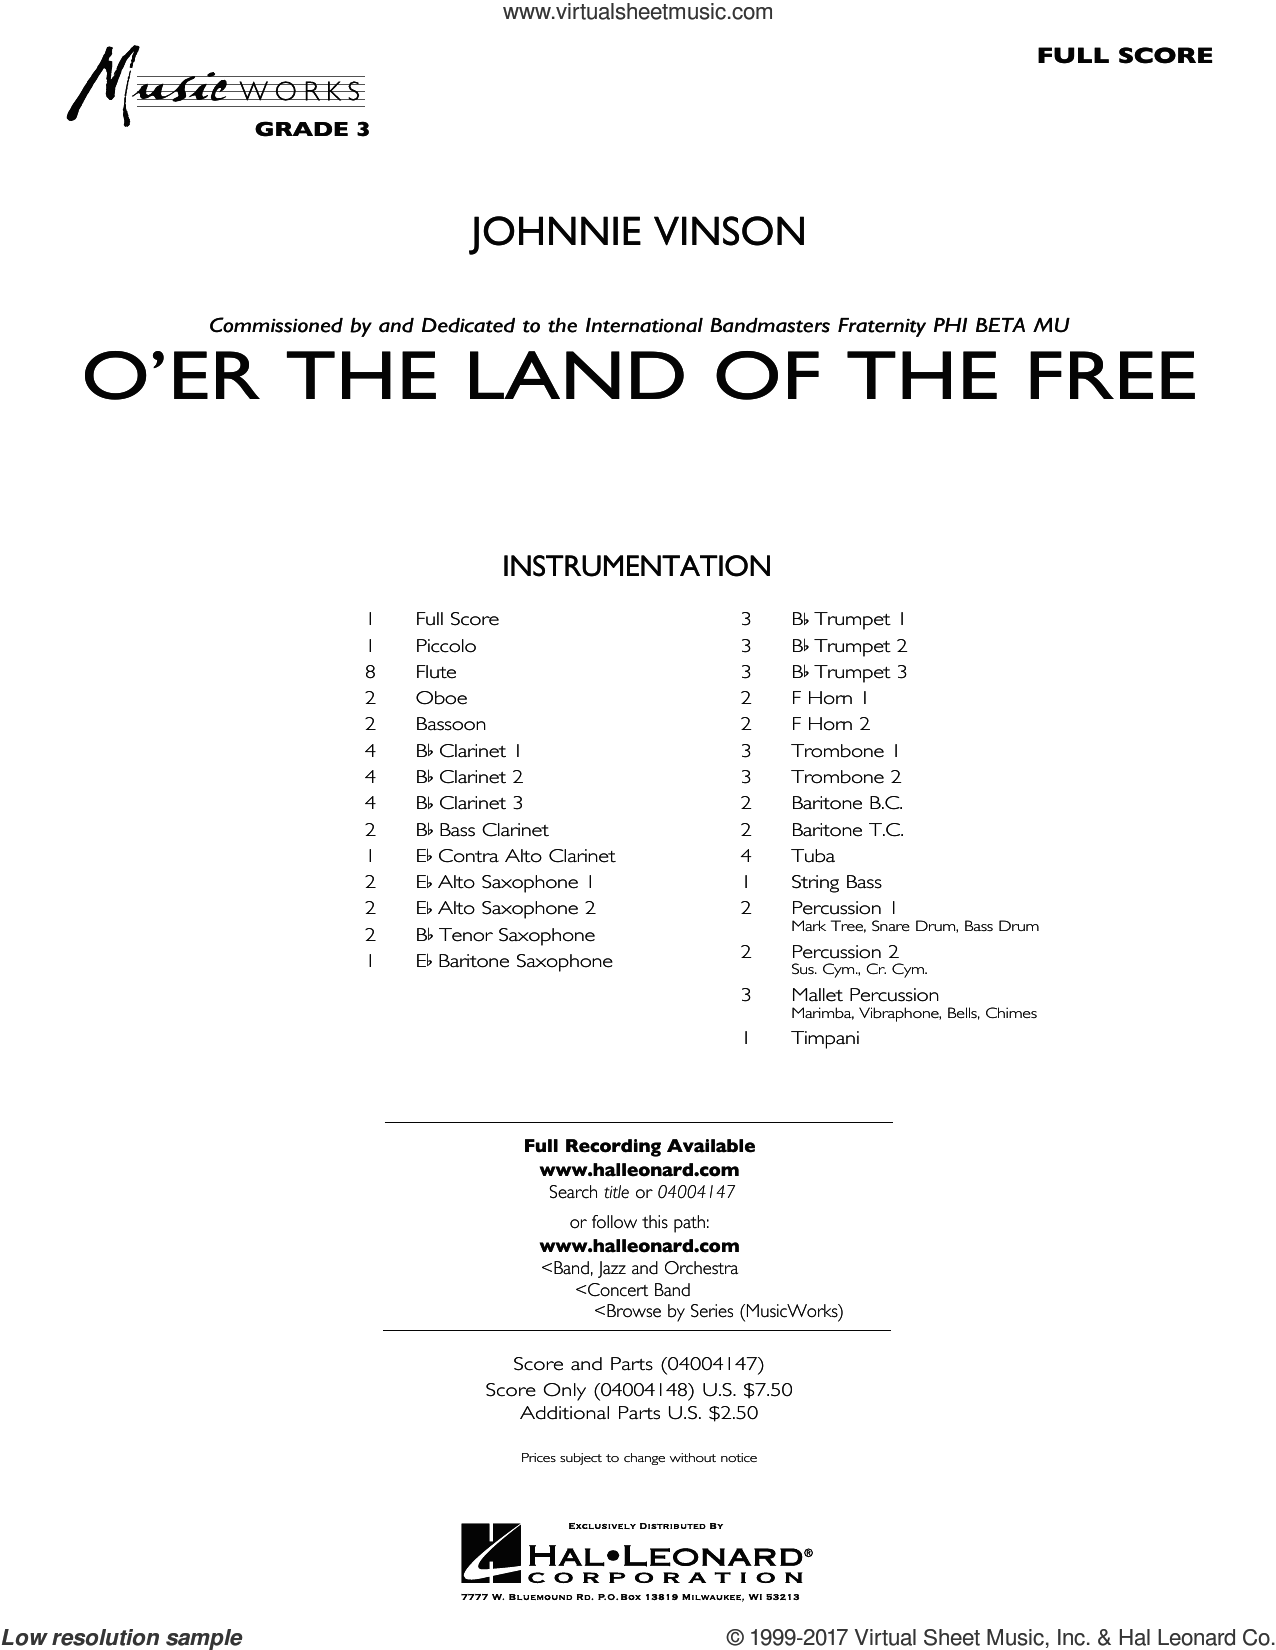 O'er the Land of the Free (COMPLETE) sheet music for concert band by Johnnie Vinson, intermediate. Score Image Preview.